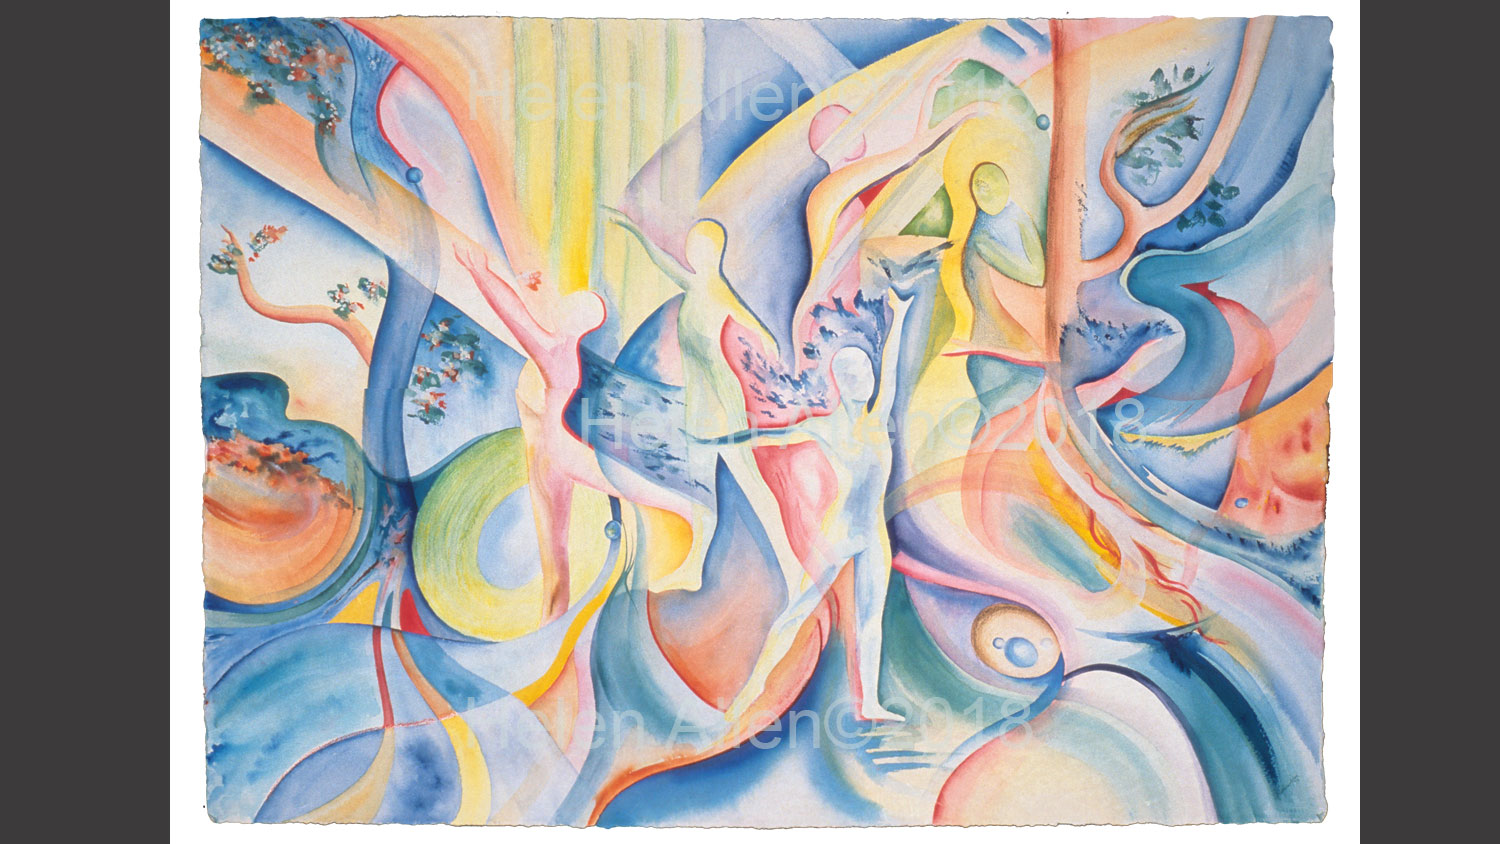 Semi-abstract painting with contemporary dance figures and tree like shapes